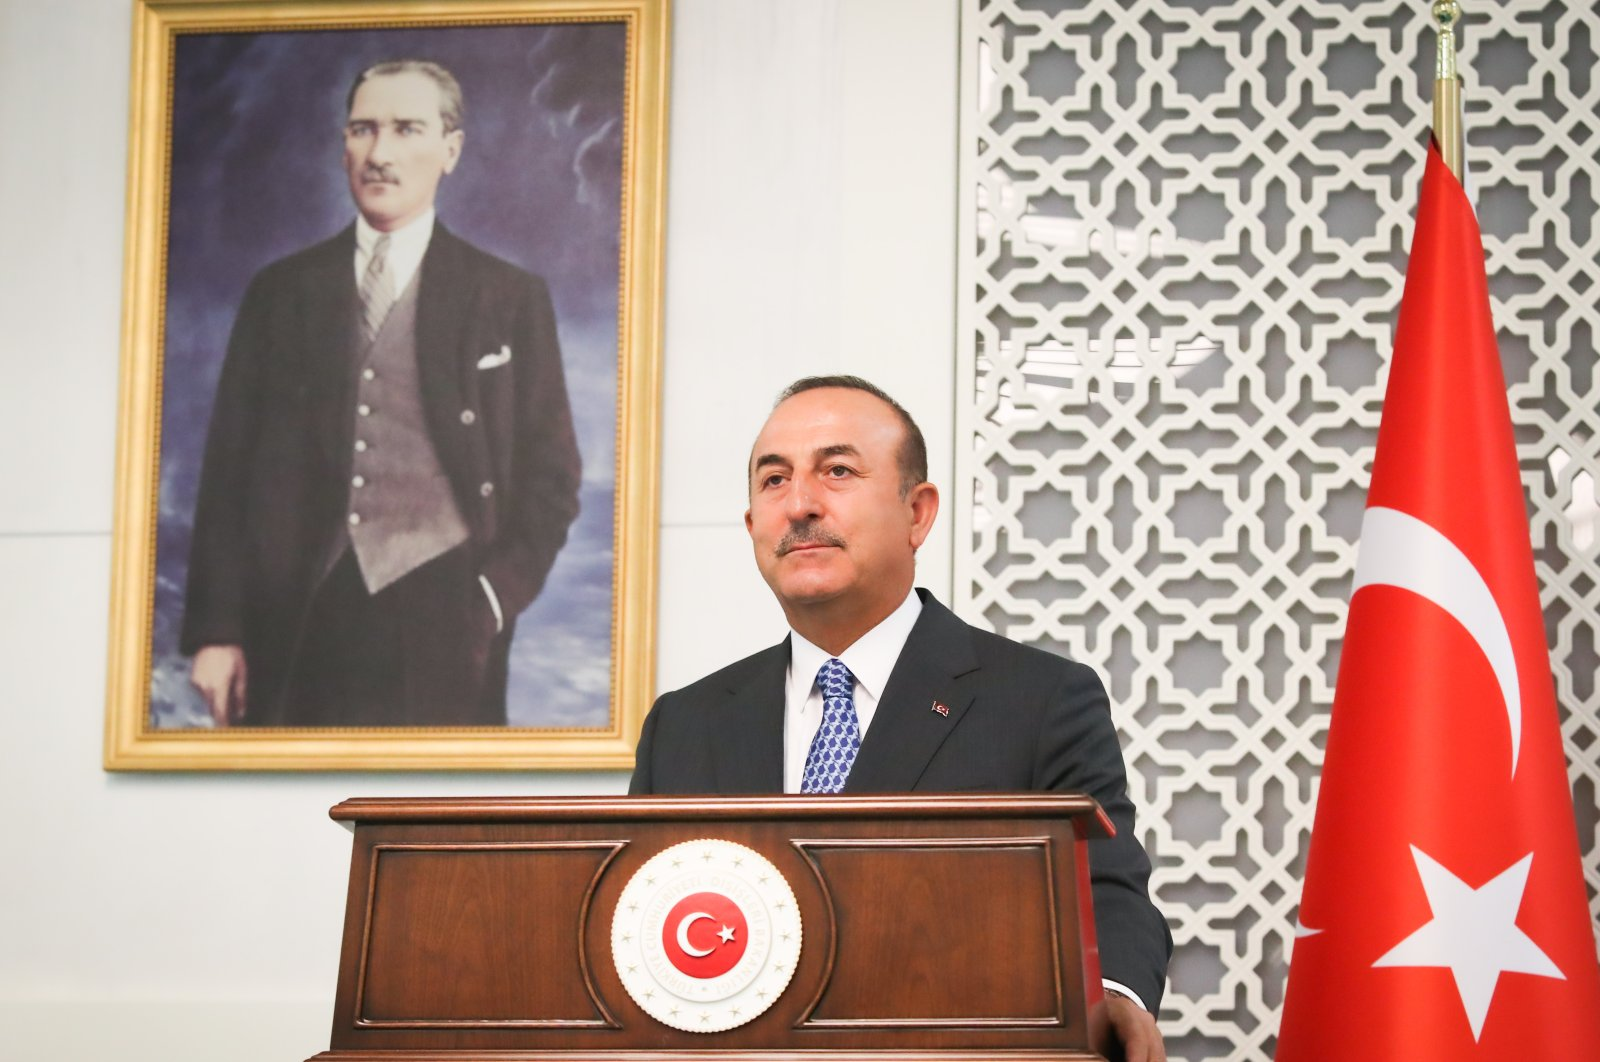 Foreign Minister Mevlüt Çavuşoğlu speaks at a joint press conference with his Maltese counterpart Evarist Bartolo, July 17, 2020. (AA)